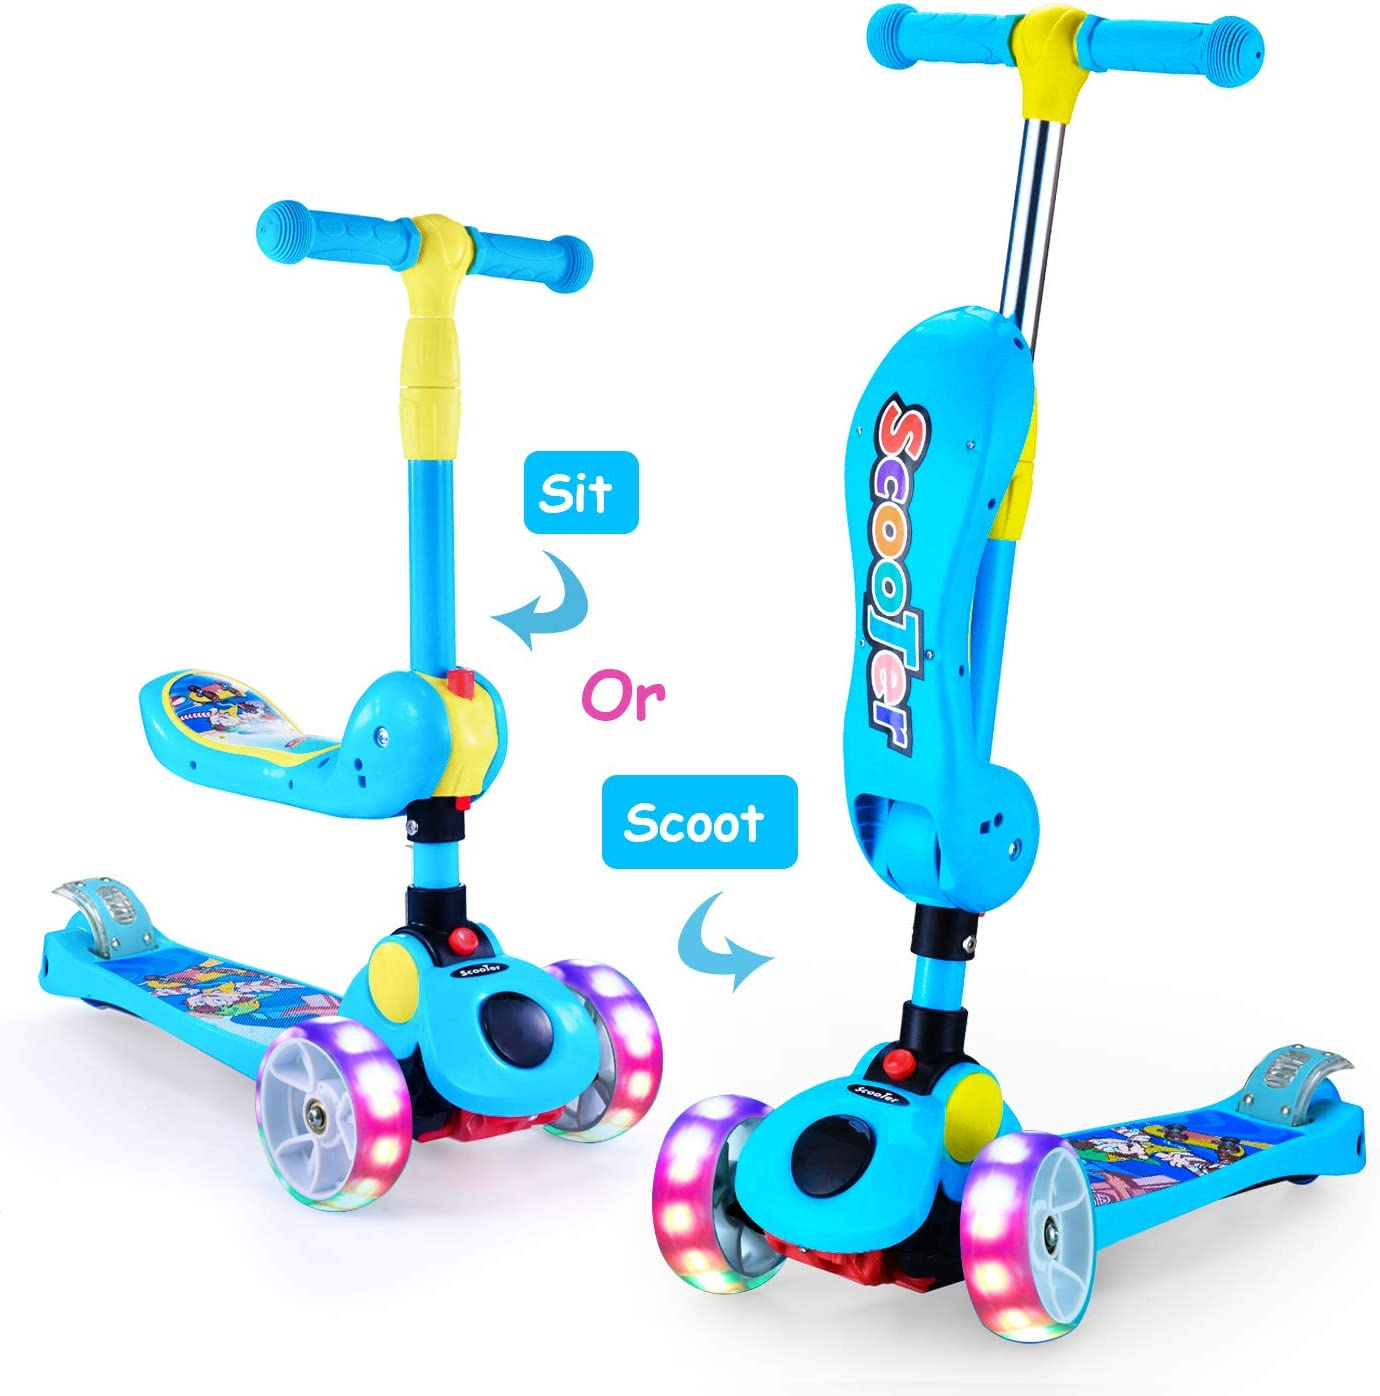 AOODIL 2-in-1 Kick Scooters for Kids Toddler 3 Wheel Scooter for Boys&Girls – Kids Scooter with LED Light Up Wheels – Adjustable Height Wide Deck for ...